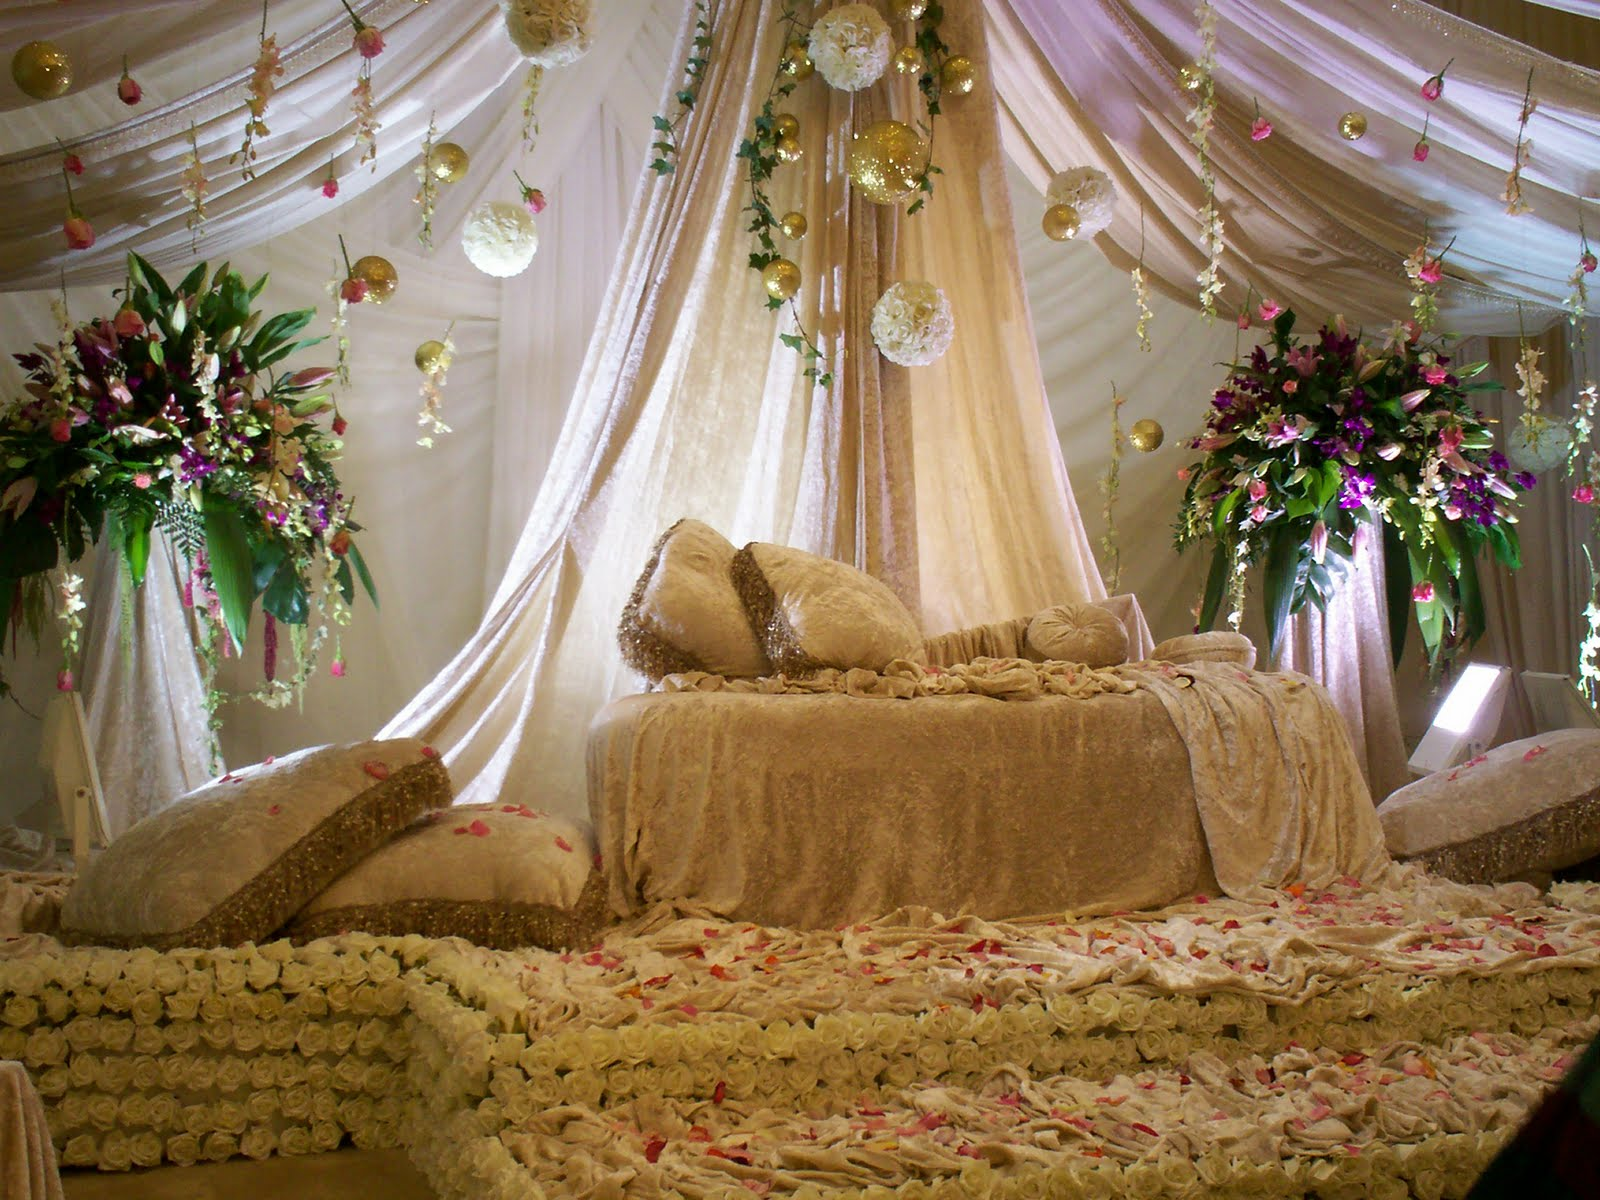 wedding decorations arabic wedding stage decoration. Black Bedroom Furniture Sets. Home Design Ideas